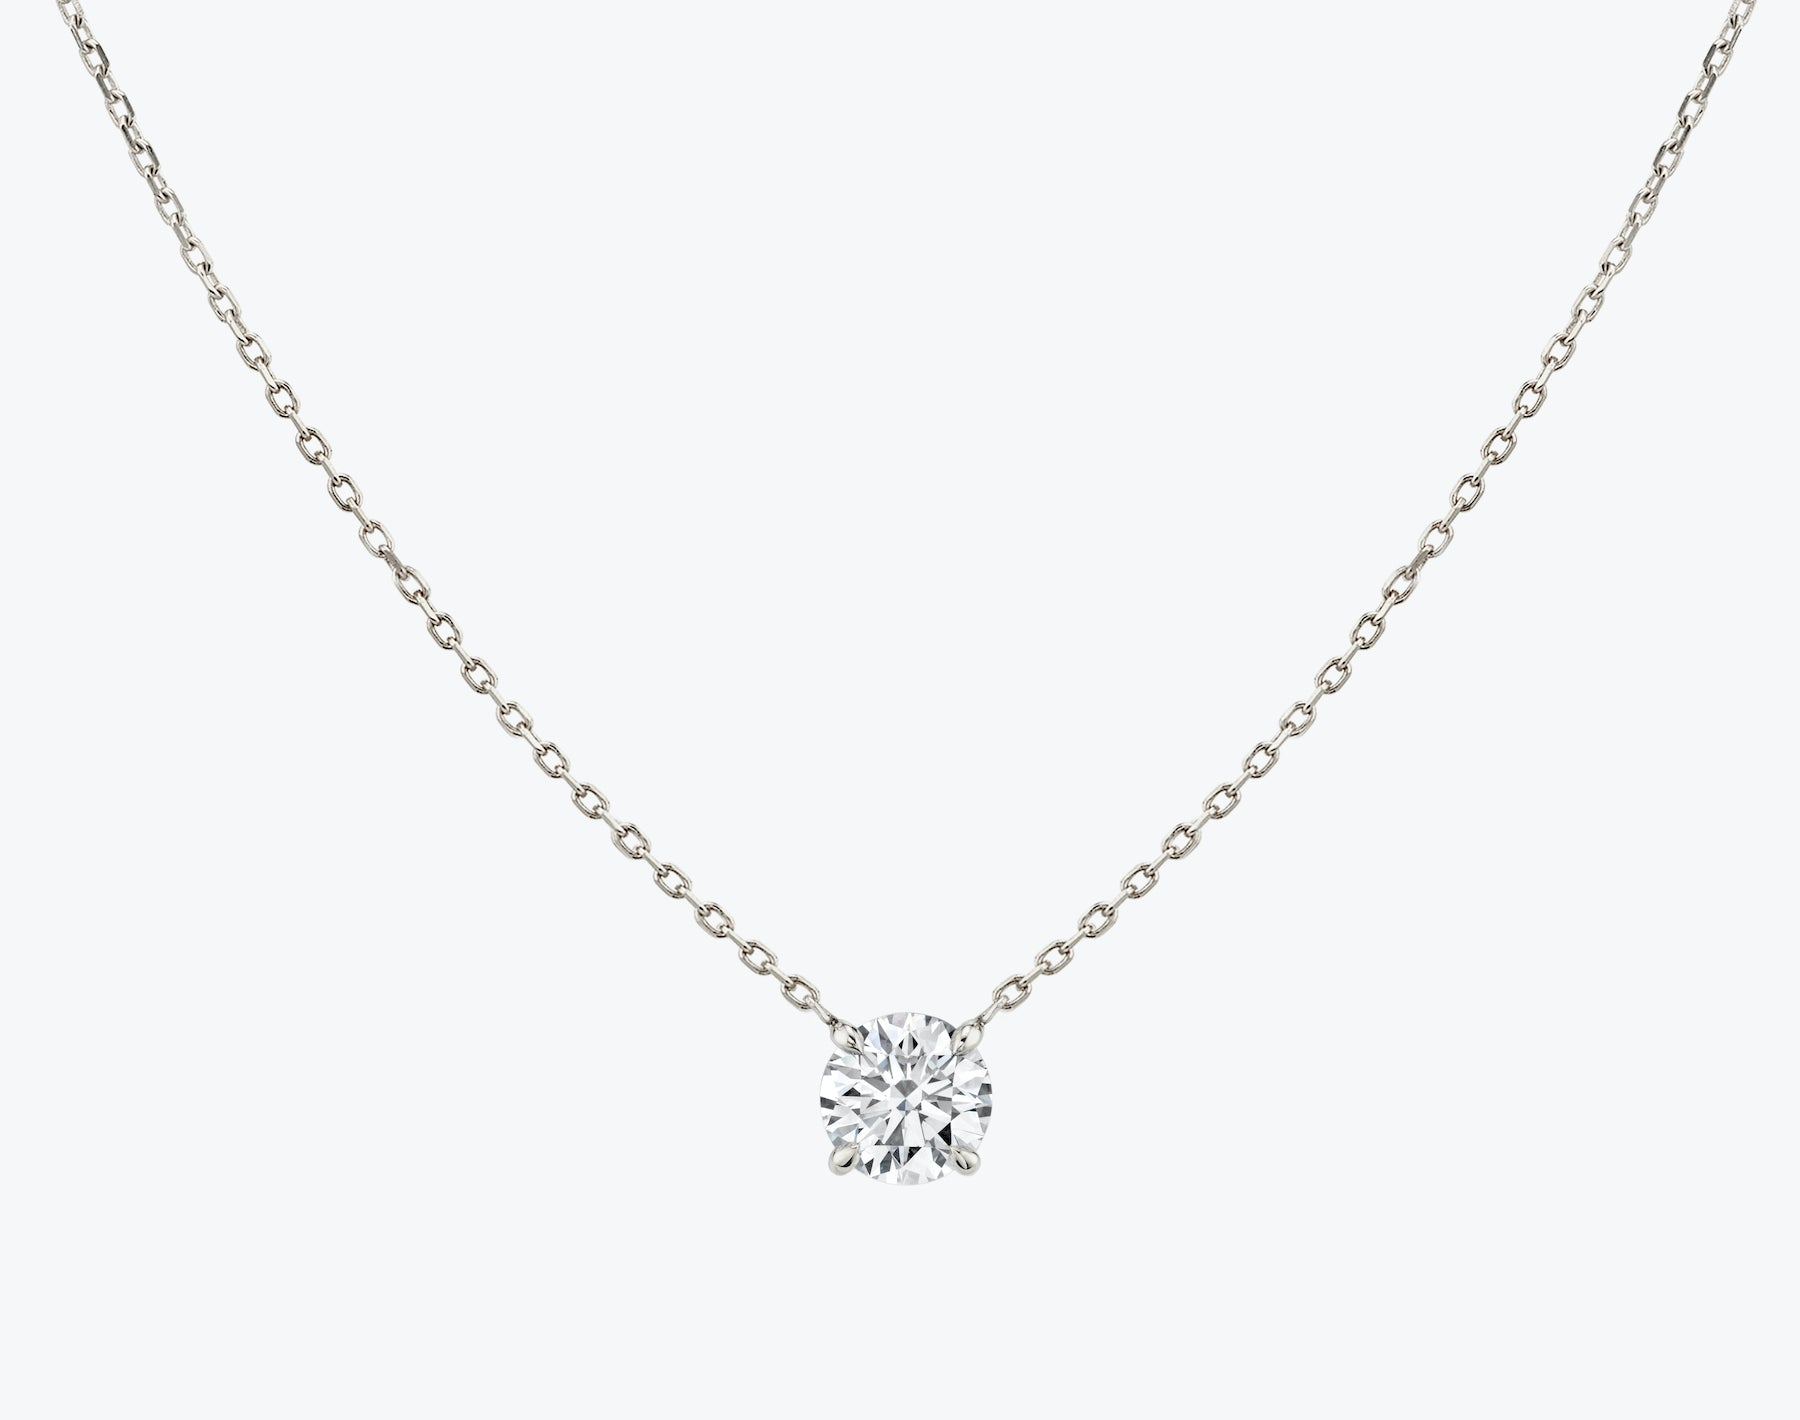 Vrai 14K solid gold solitaire round brilliant diamond necklace 1ct minimalist delicate, 14K White Gold